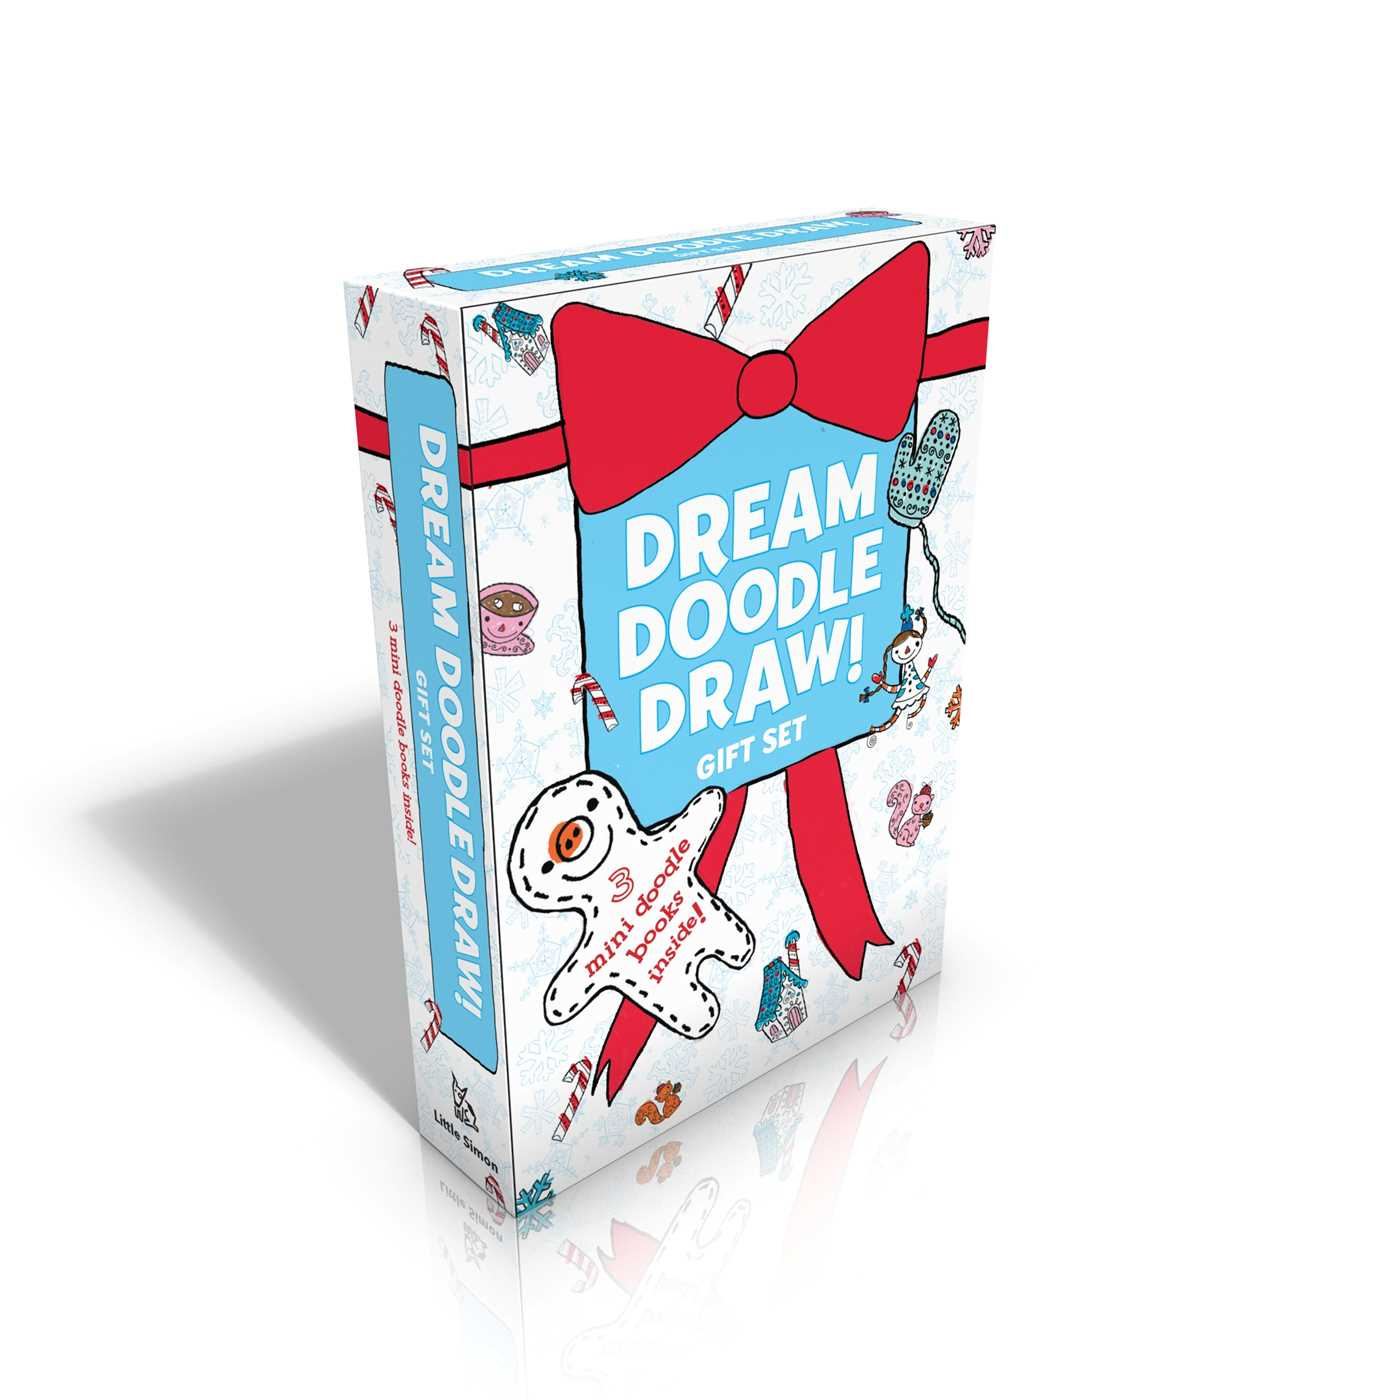 Dream doodle draw gift set 9781481471596 hr